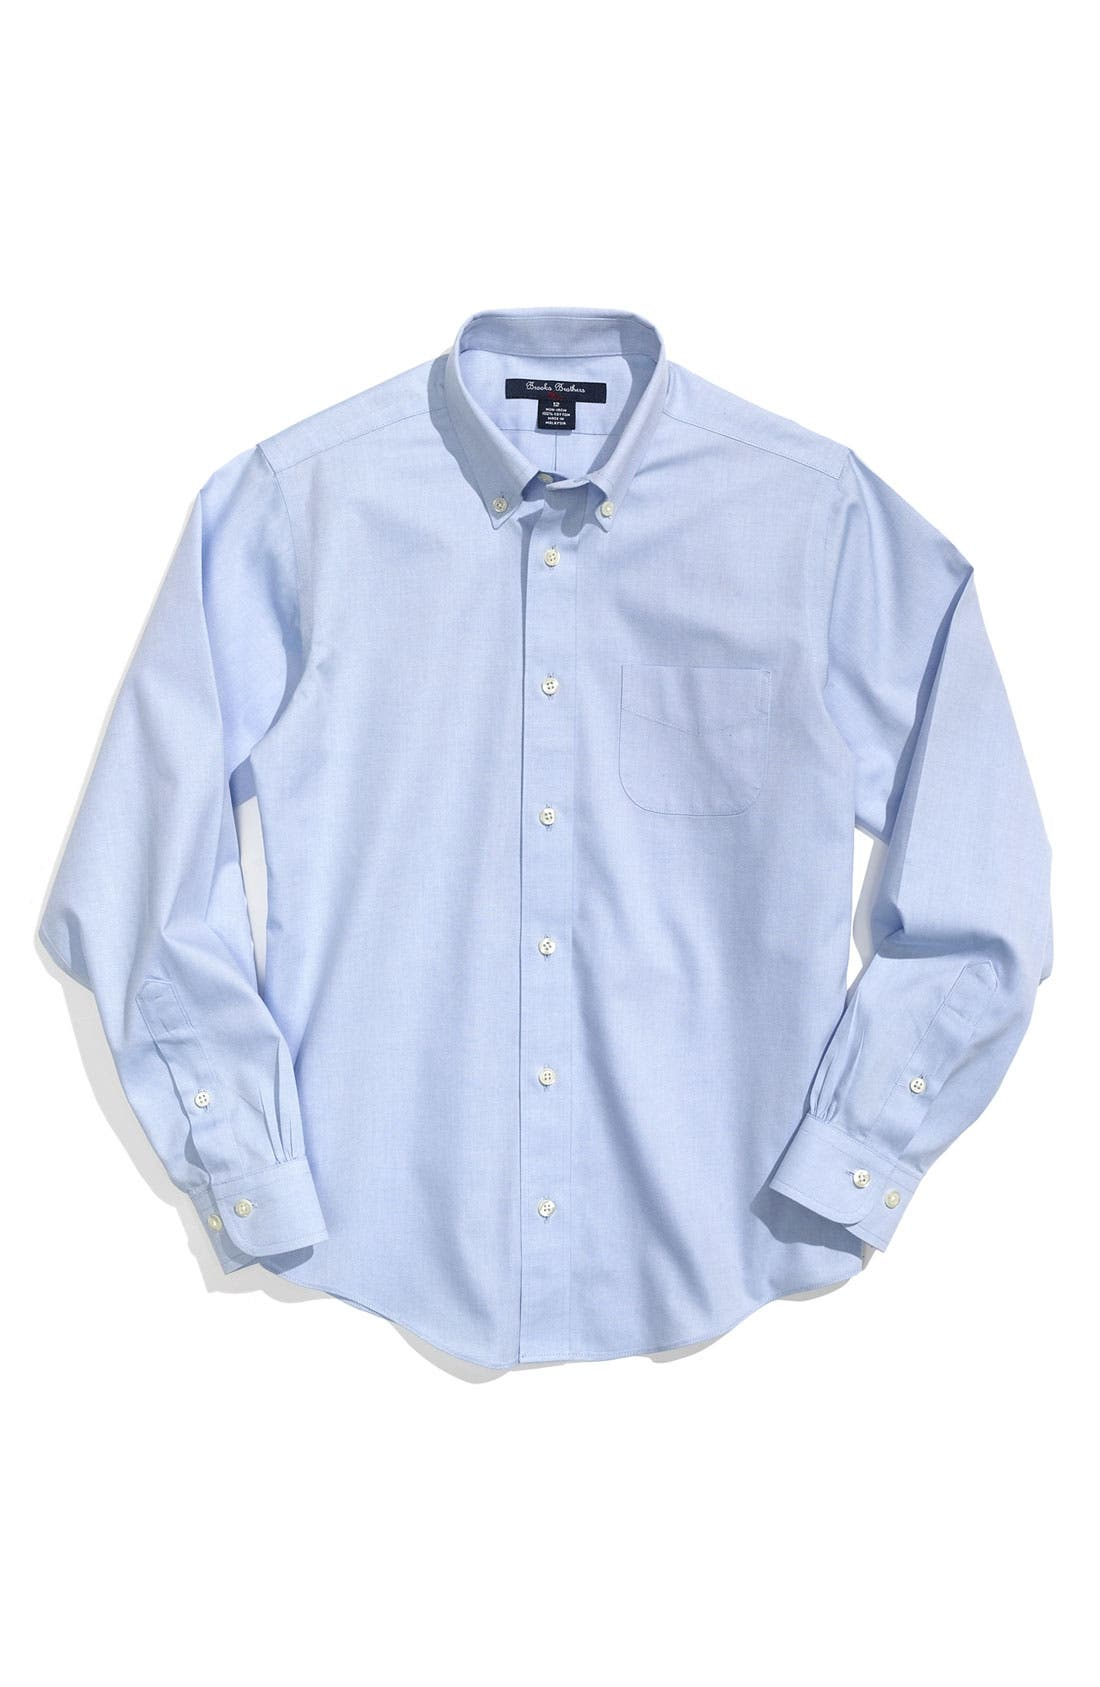 Alternate Image 1 Selected - Brooks Brothers Dress Shirt (Big Boys)